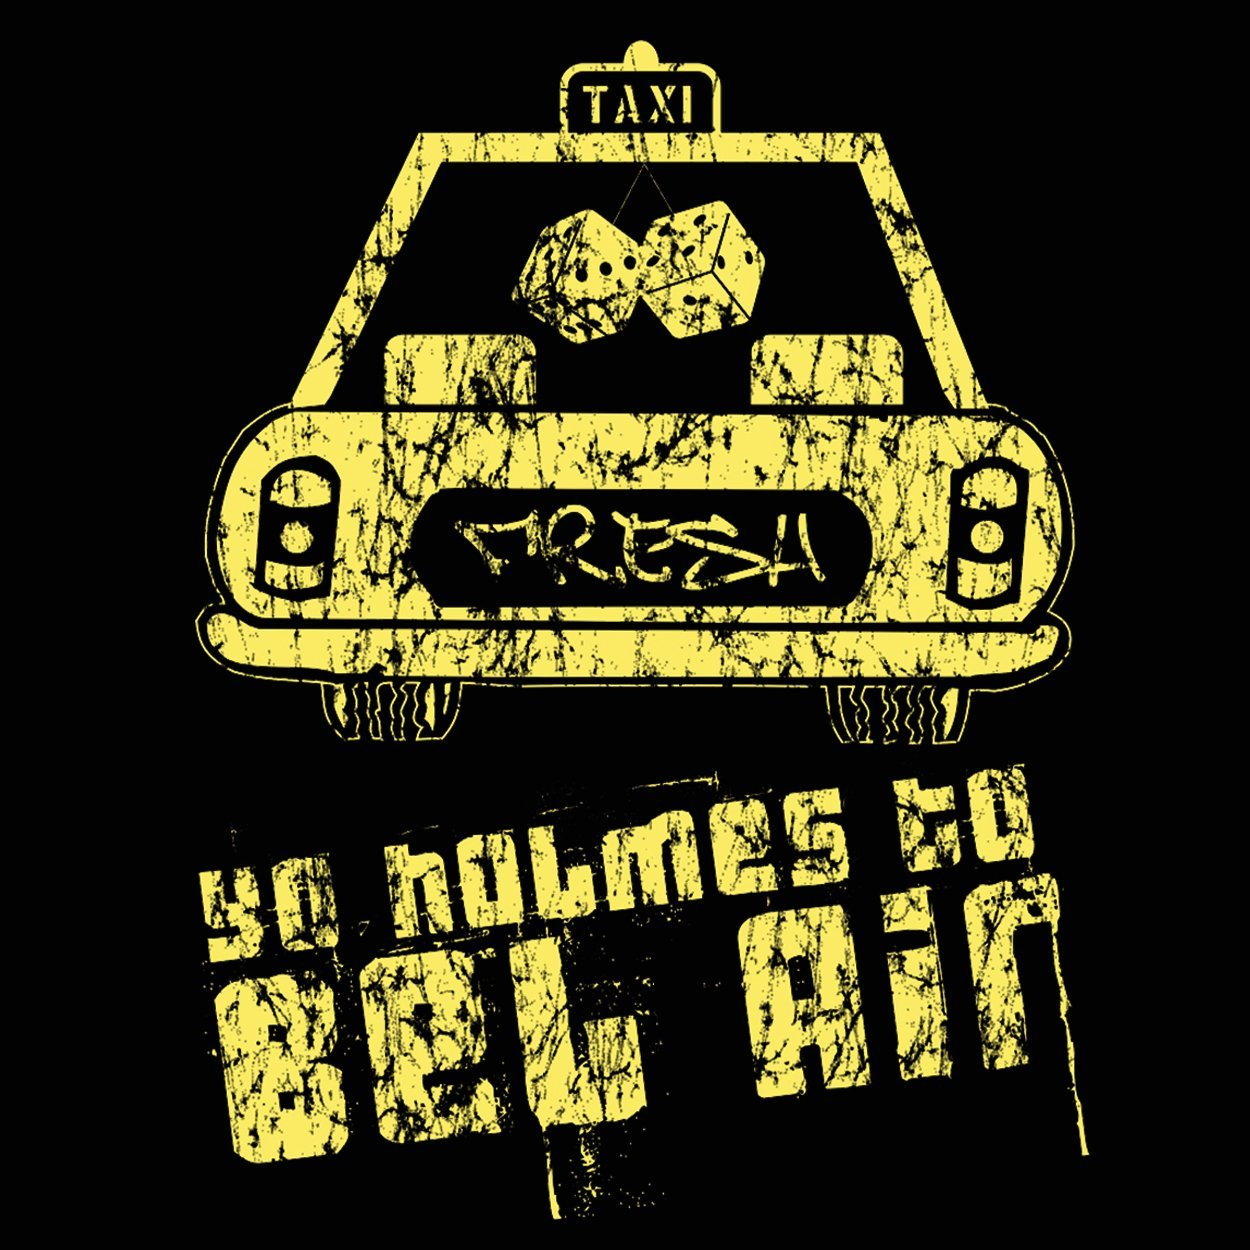 Yo Holmes To Bel Air - DonkeyTees